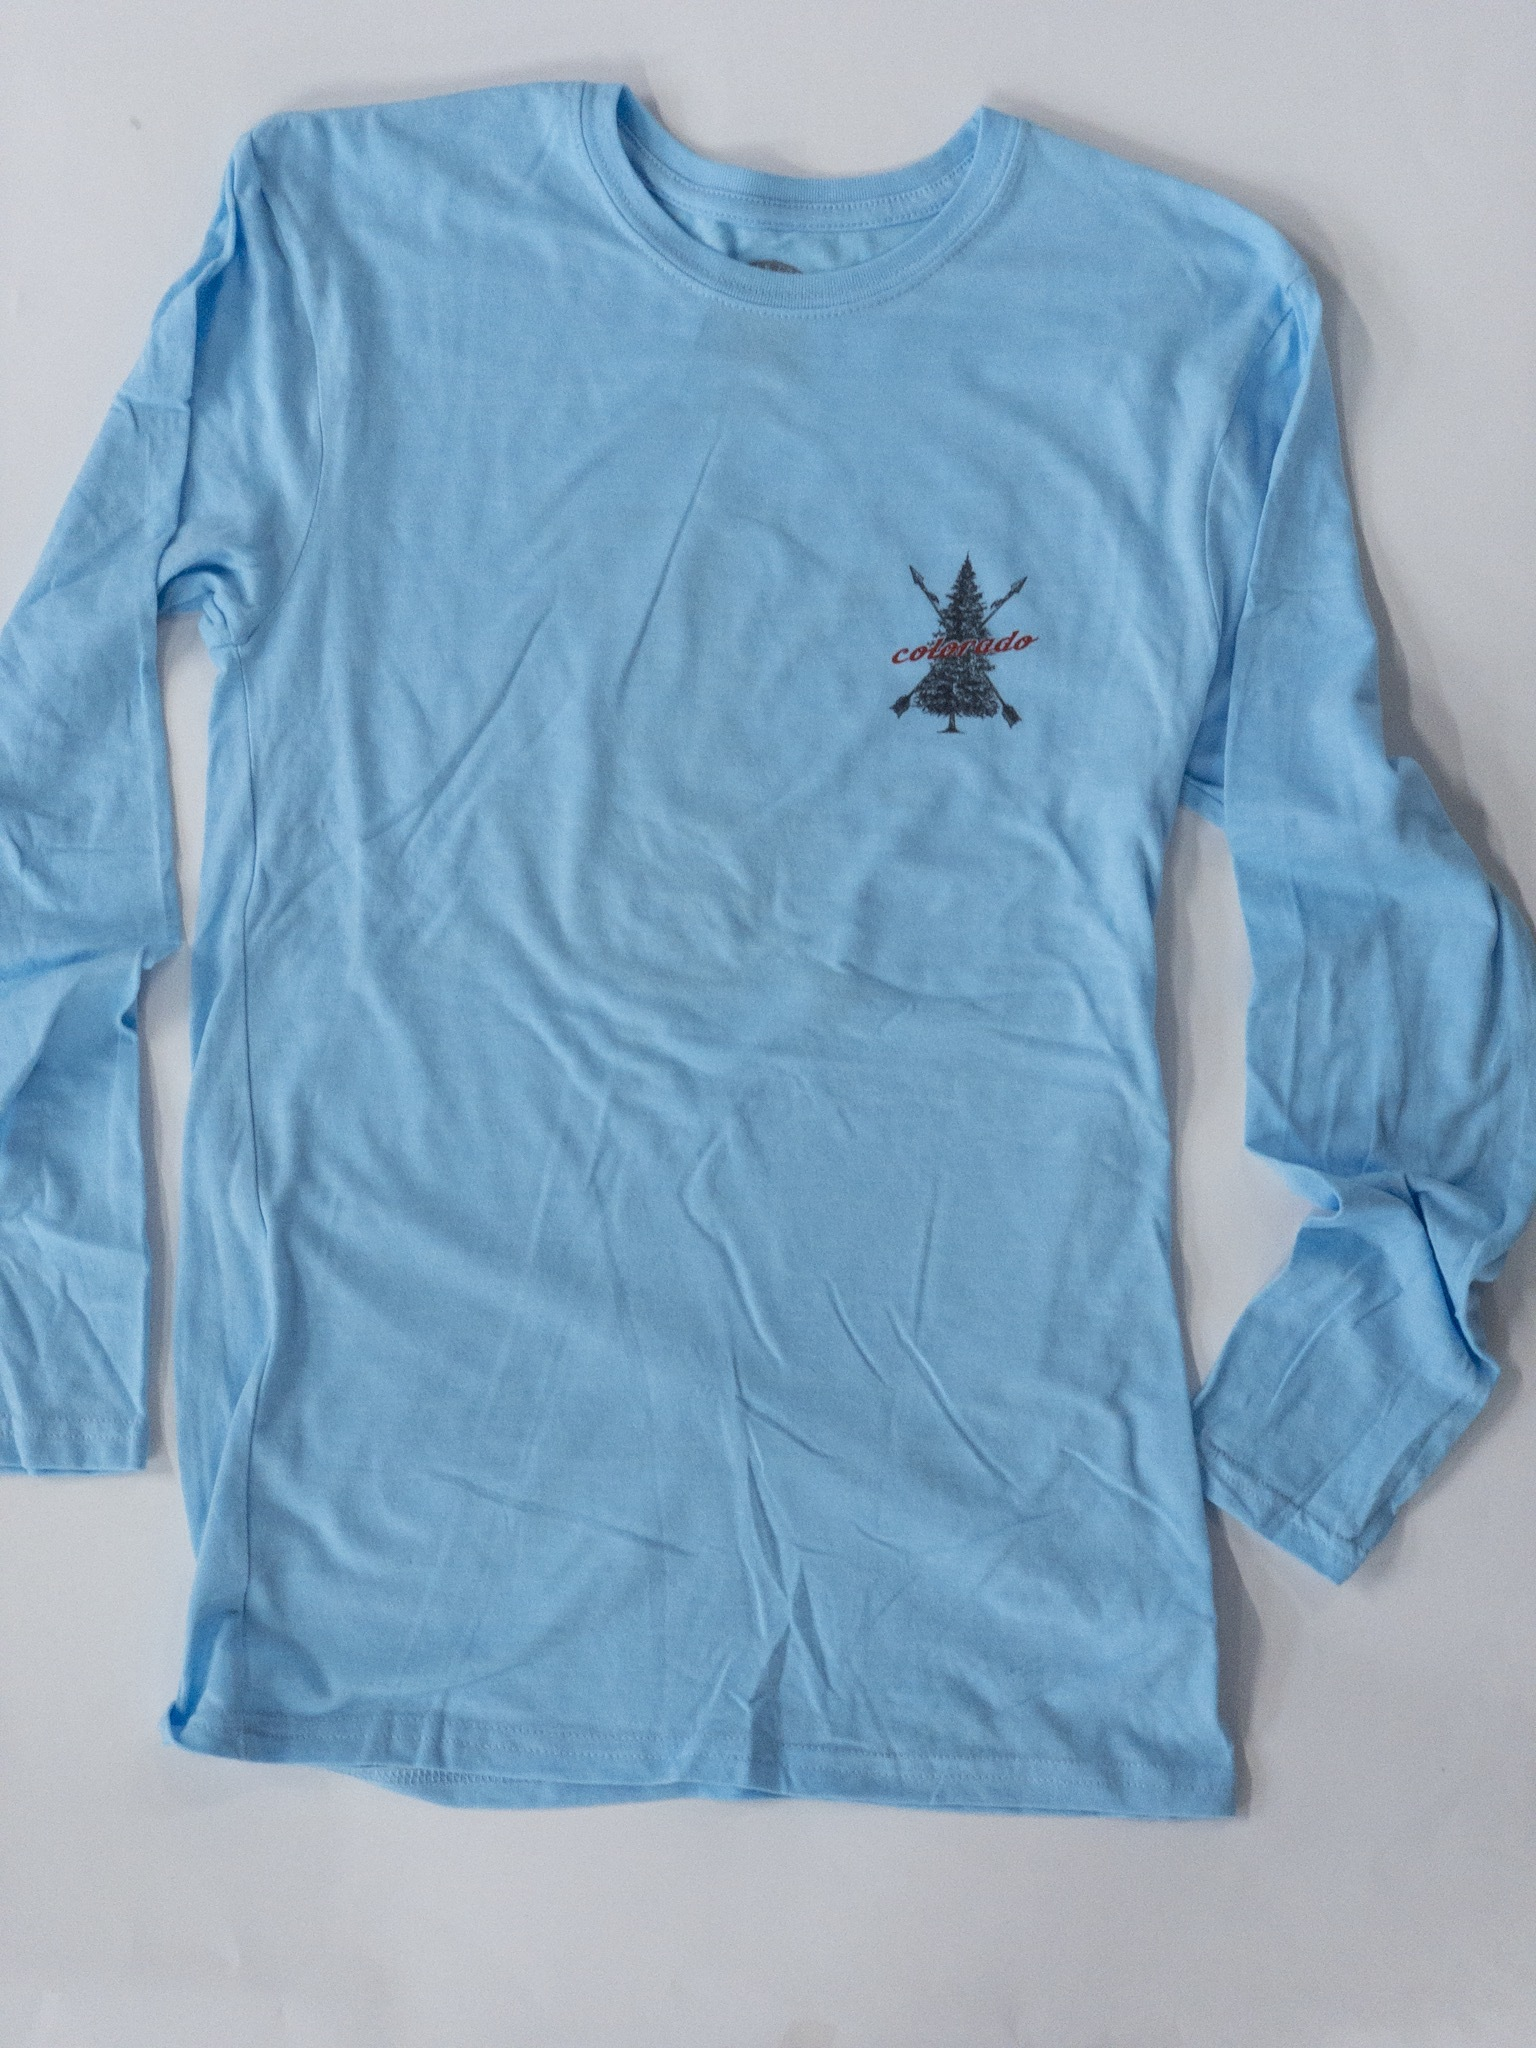 Blue Colorado Tree T-shirt 00022